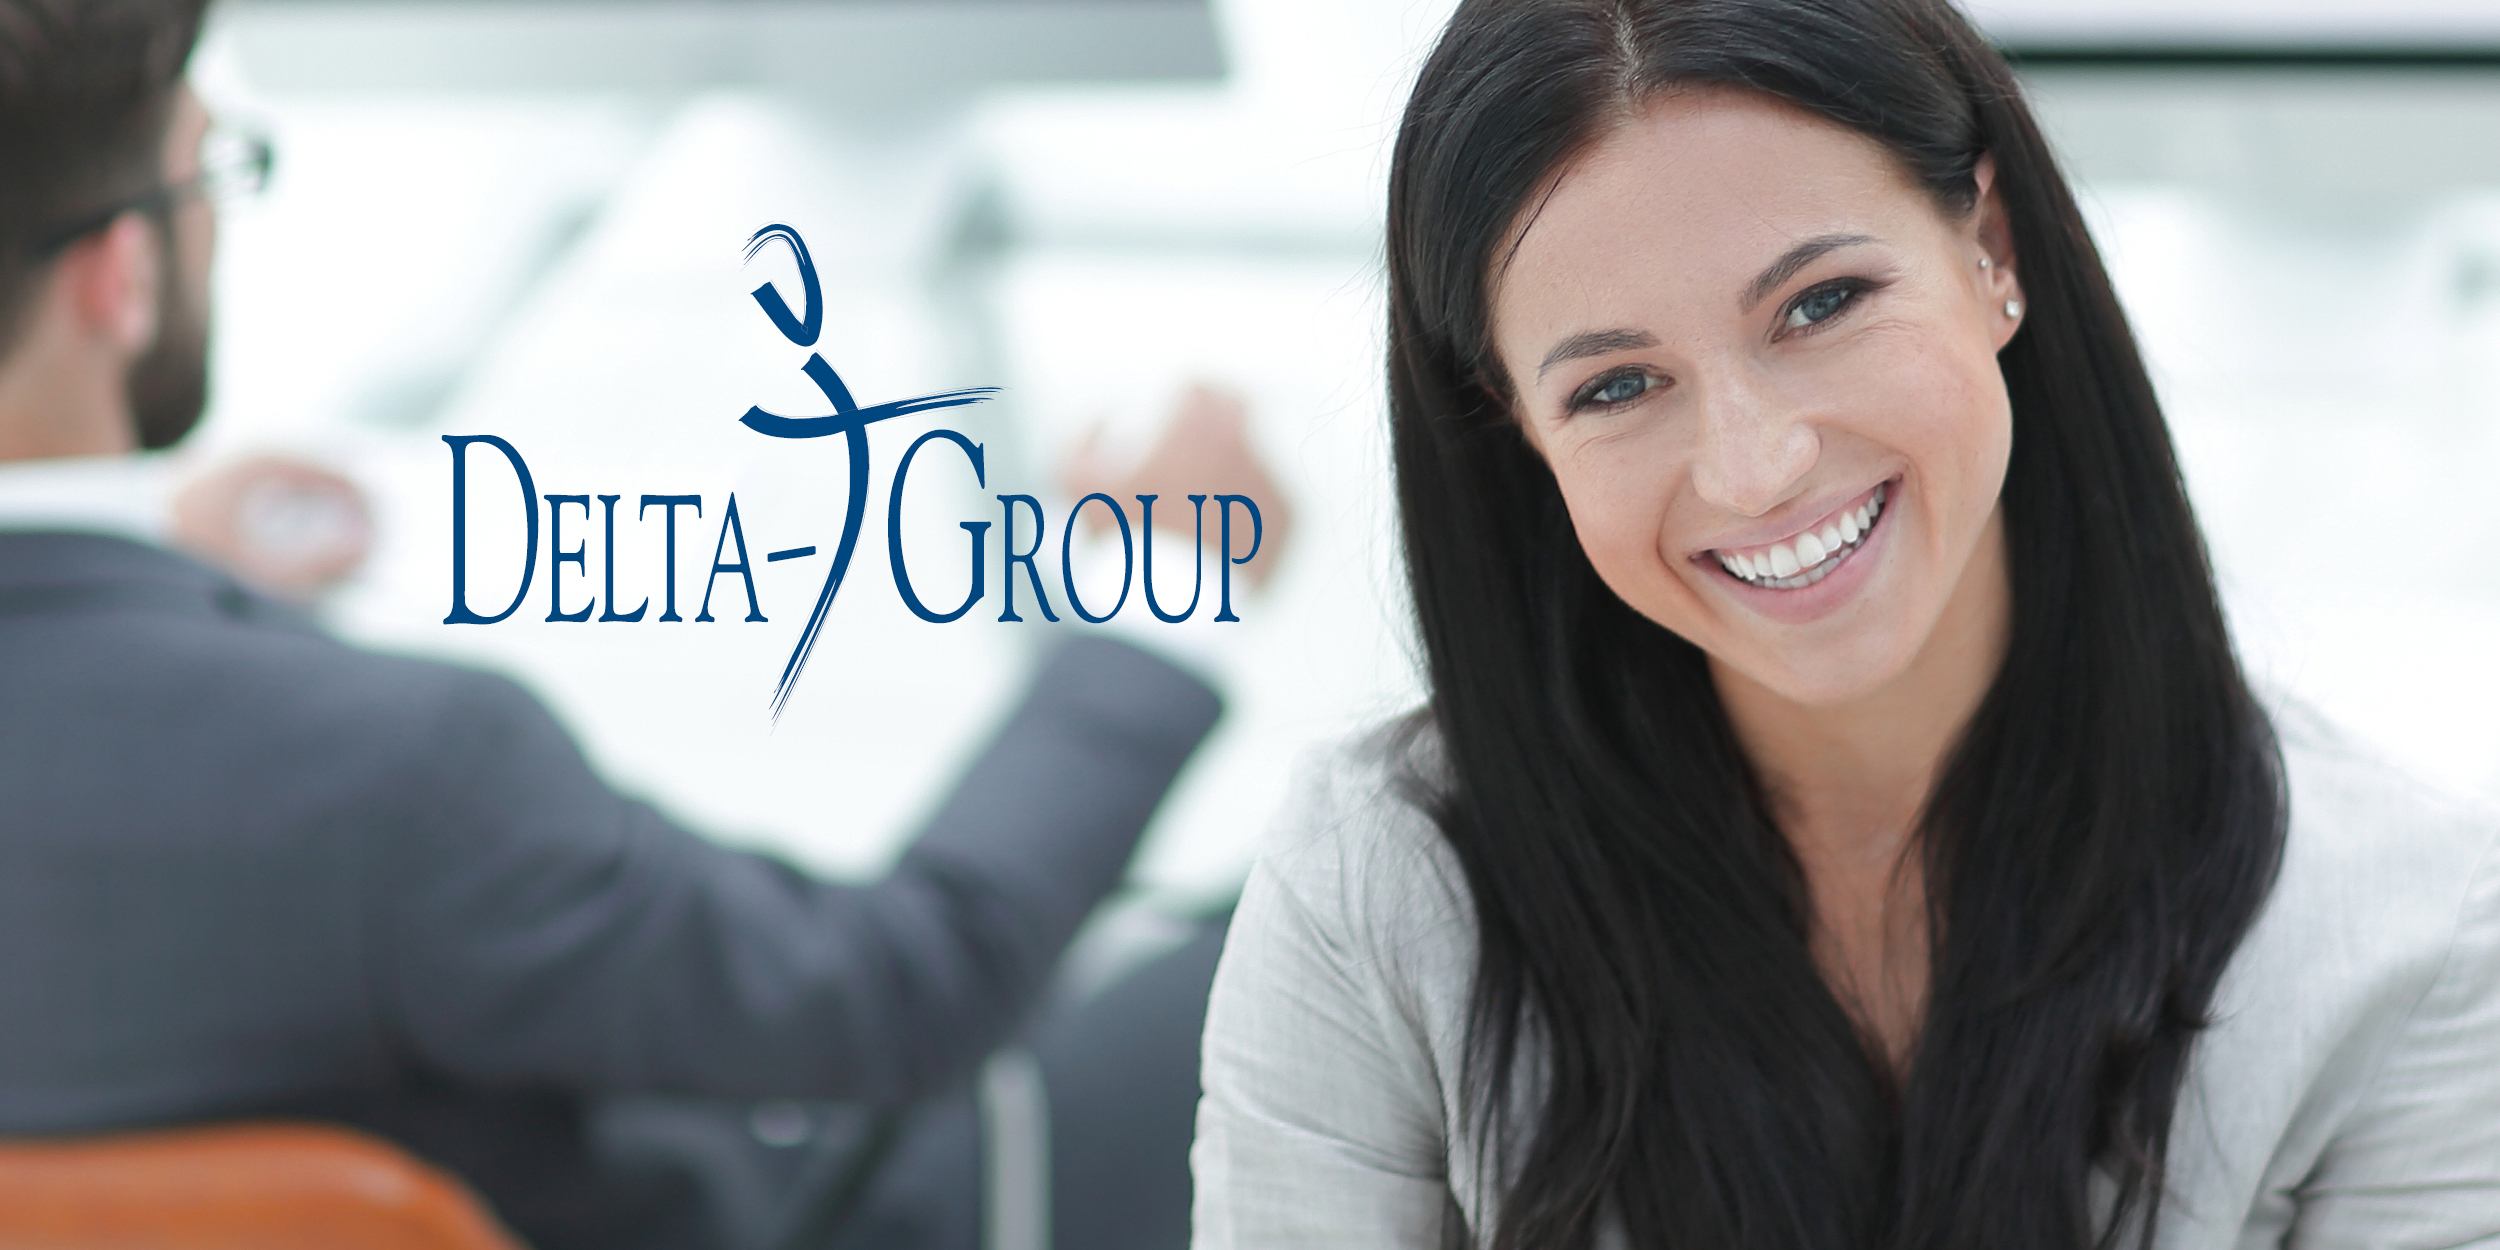 Licensed Social Worker in Waterbury, CT - Delta-T Group